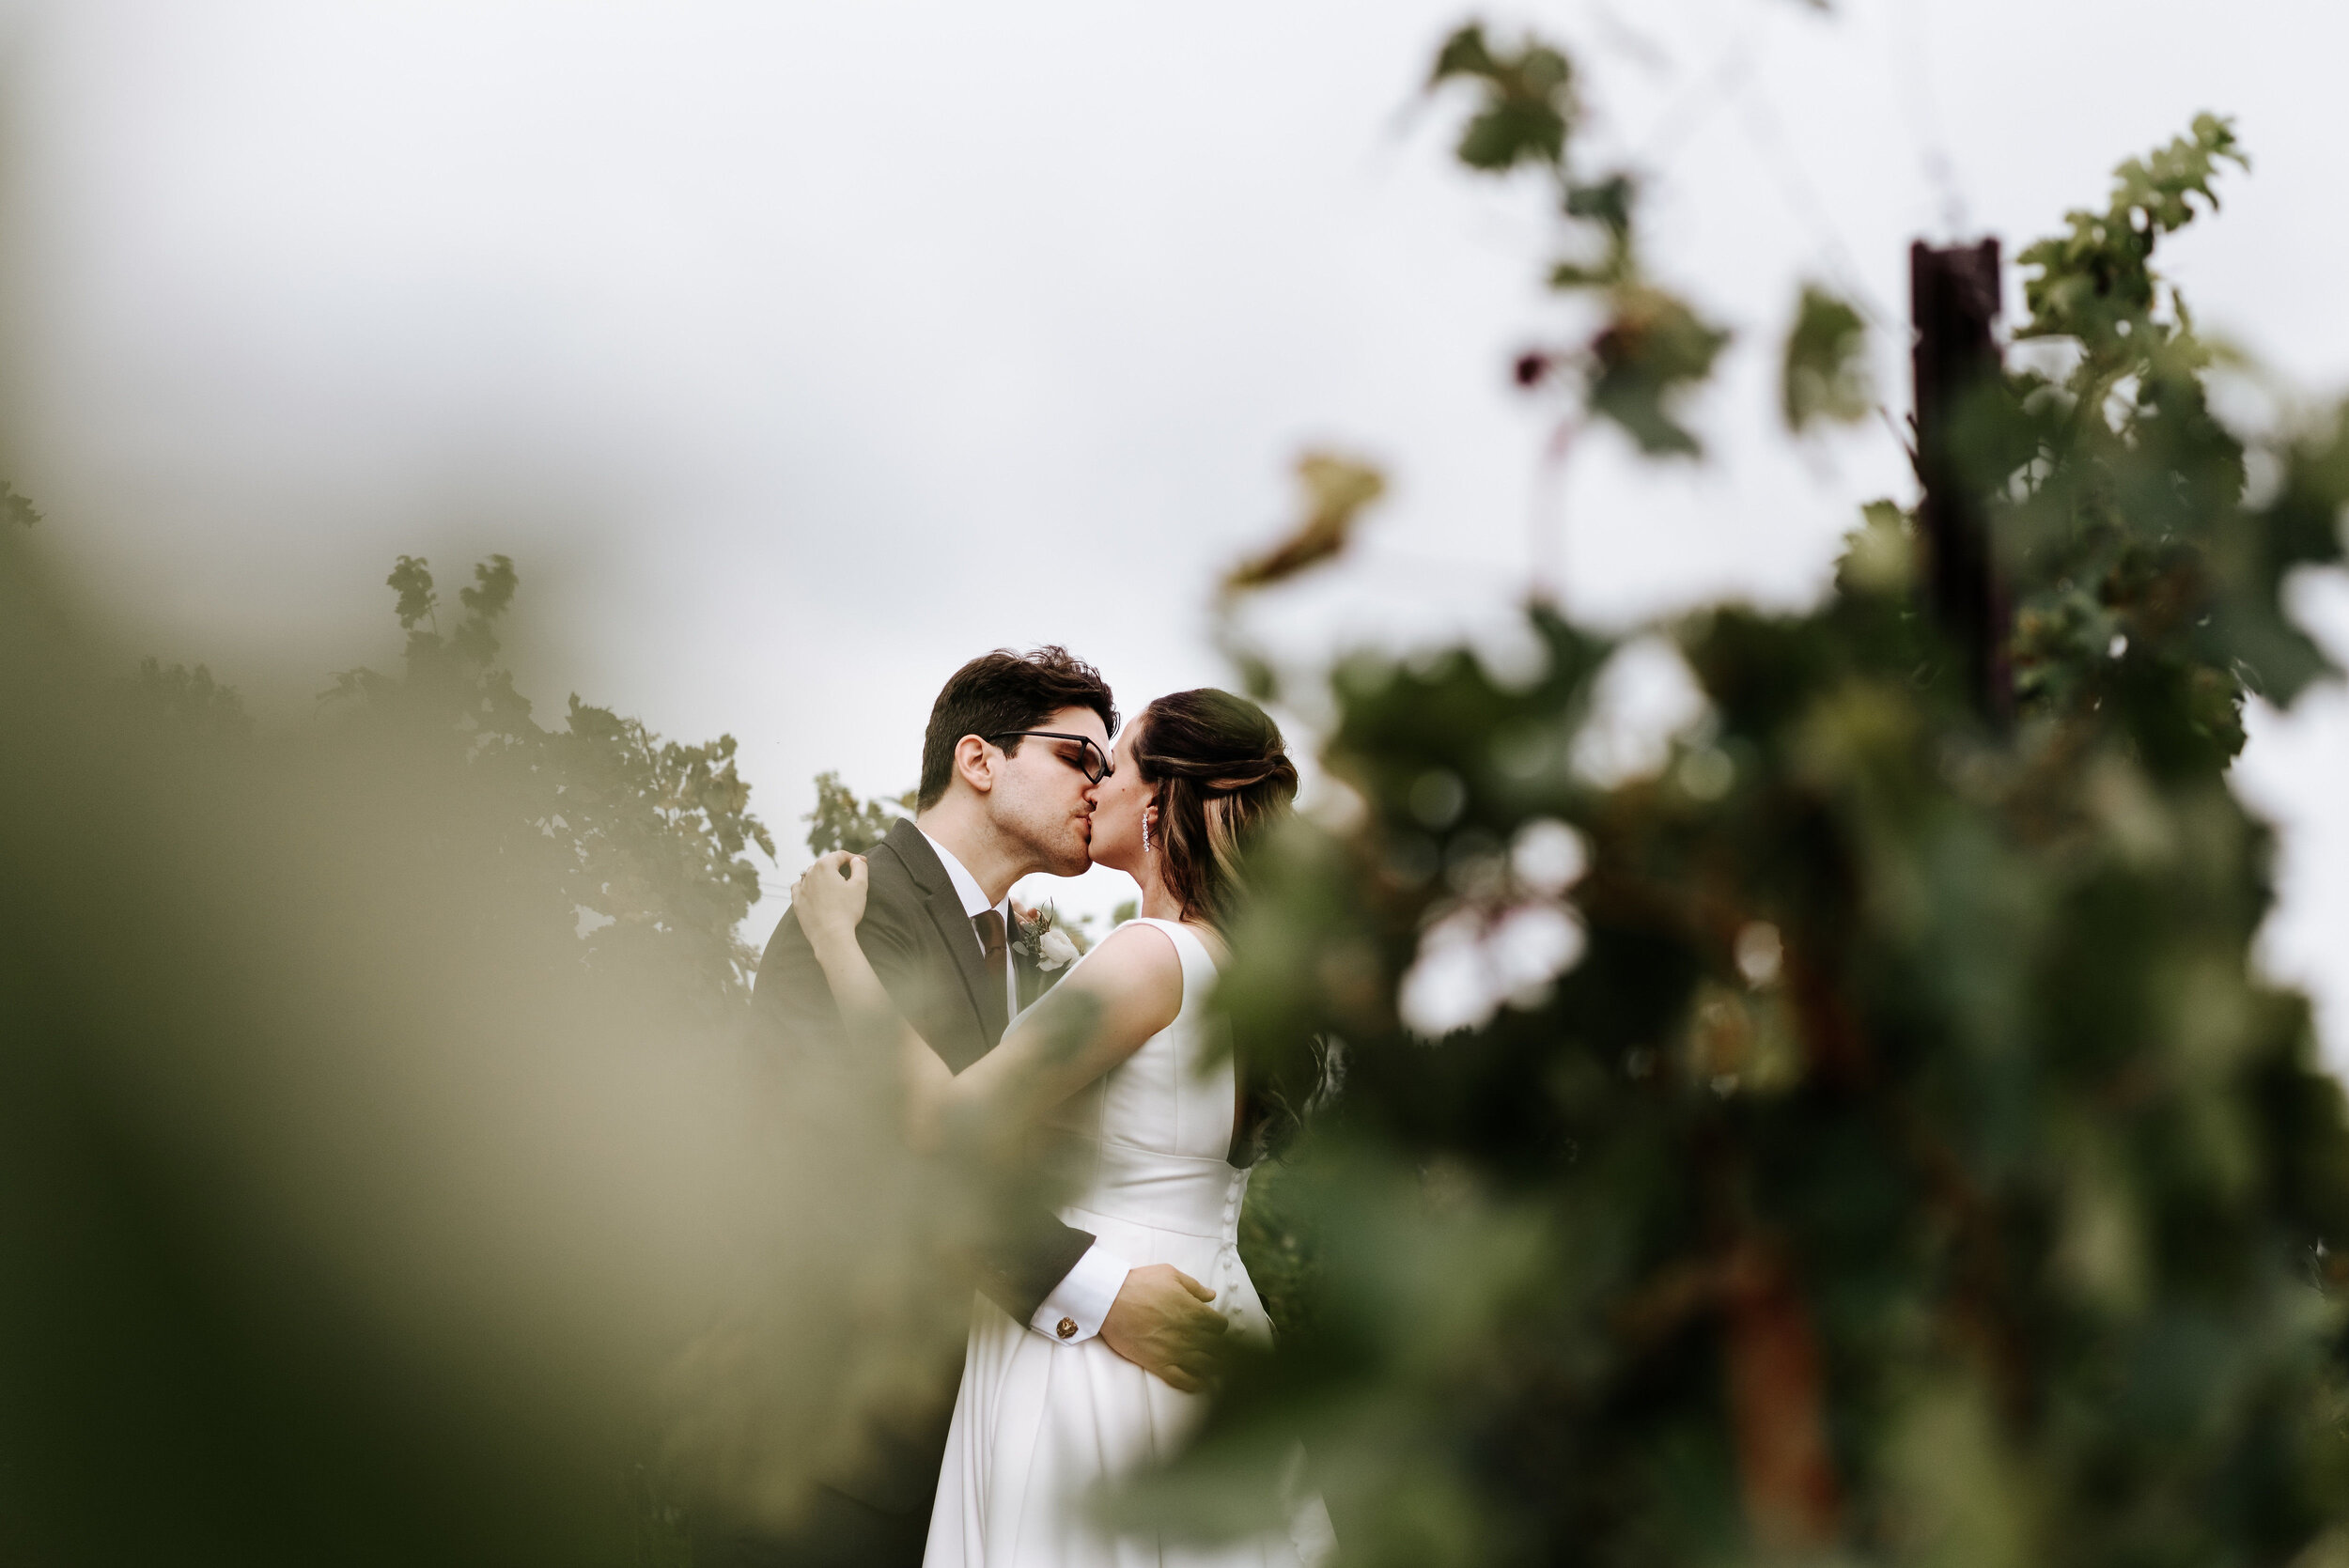 Allison_Nolan_Moss_Vineyards_Wedding_Charlottesville_Virginia_Photography_by_V_34.jpg